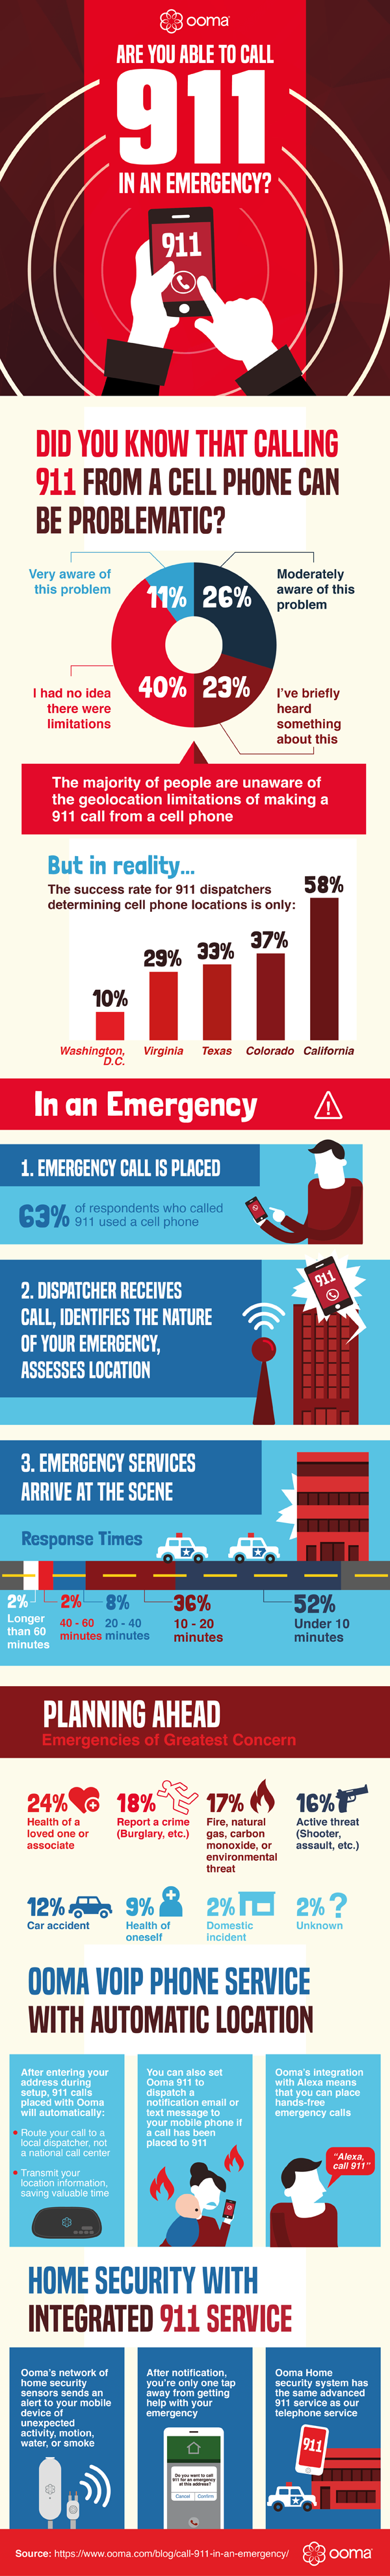 Are You Able To Call 911 In An Emergency?